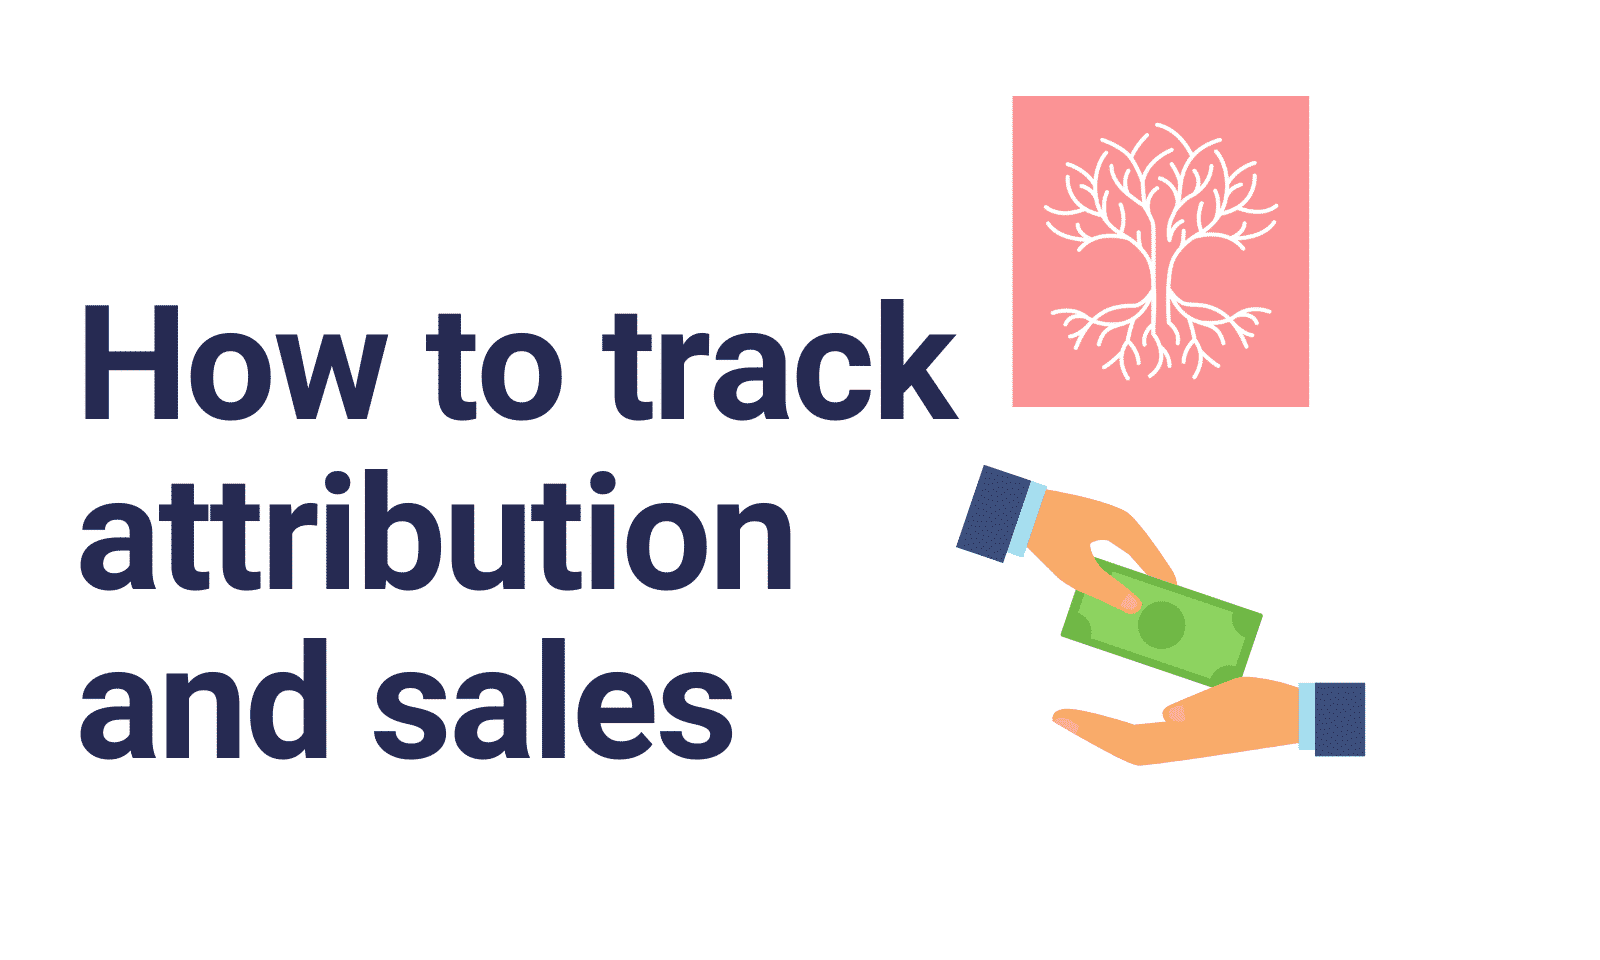 advertising attribution and sales